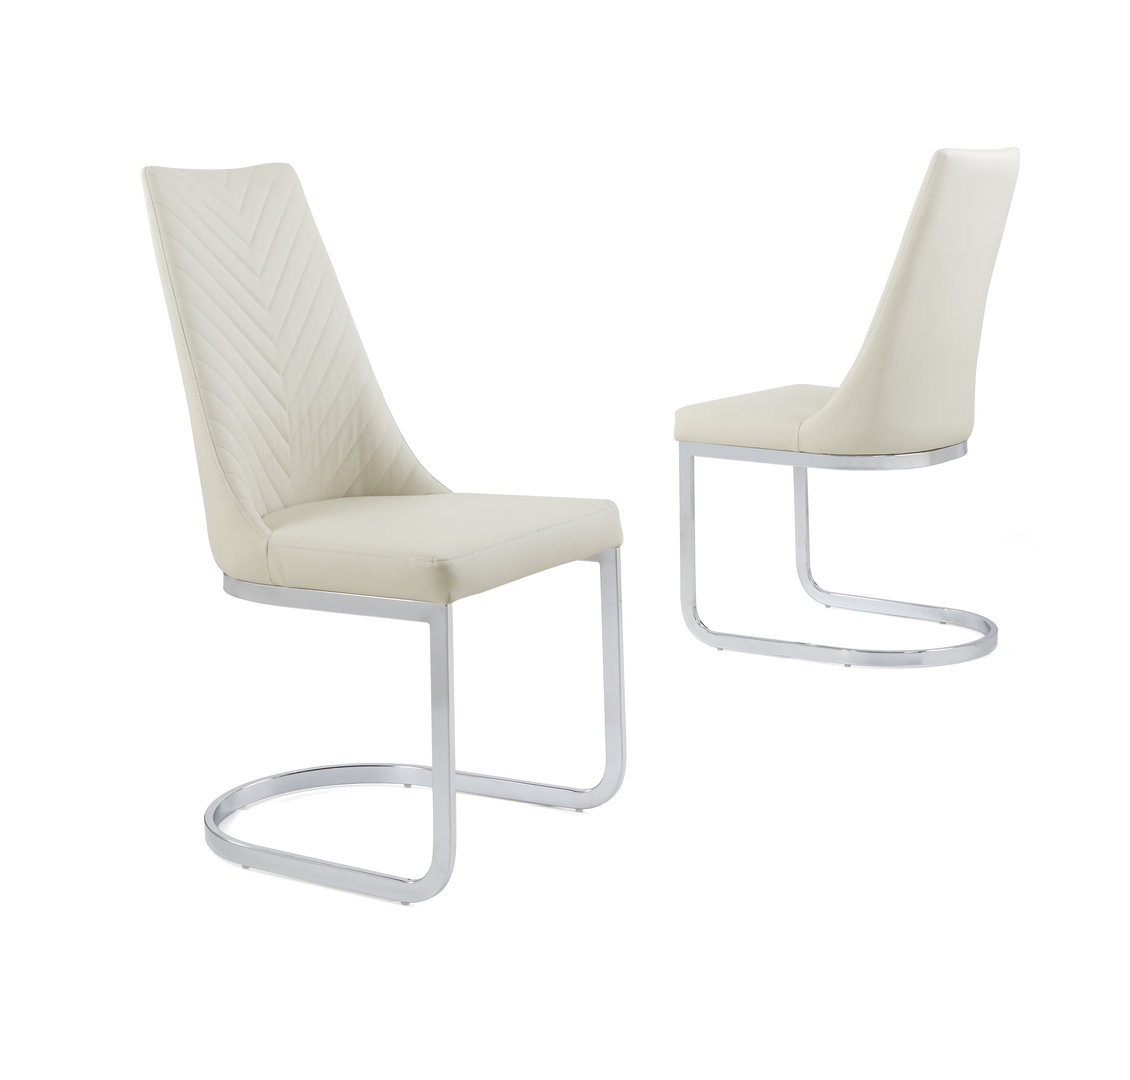 Cream Leather Dining Room Chairs: Cream Faux Leather Dining Chair With Curved Leg